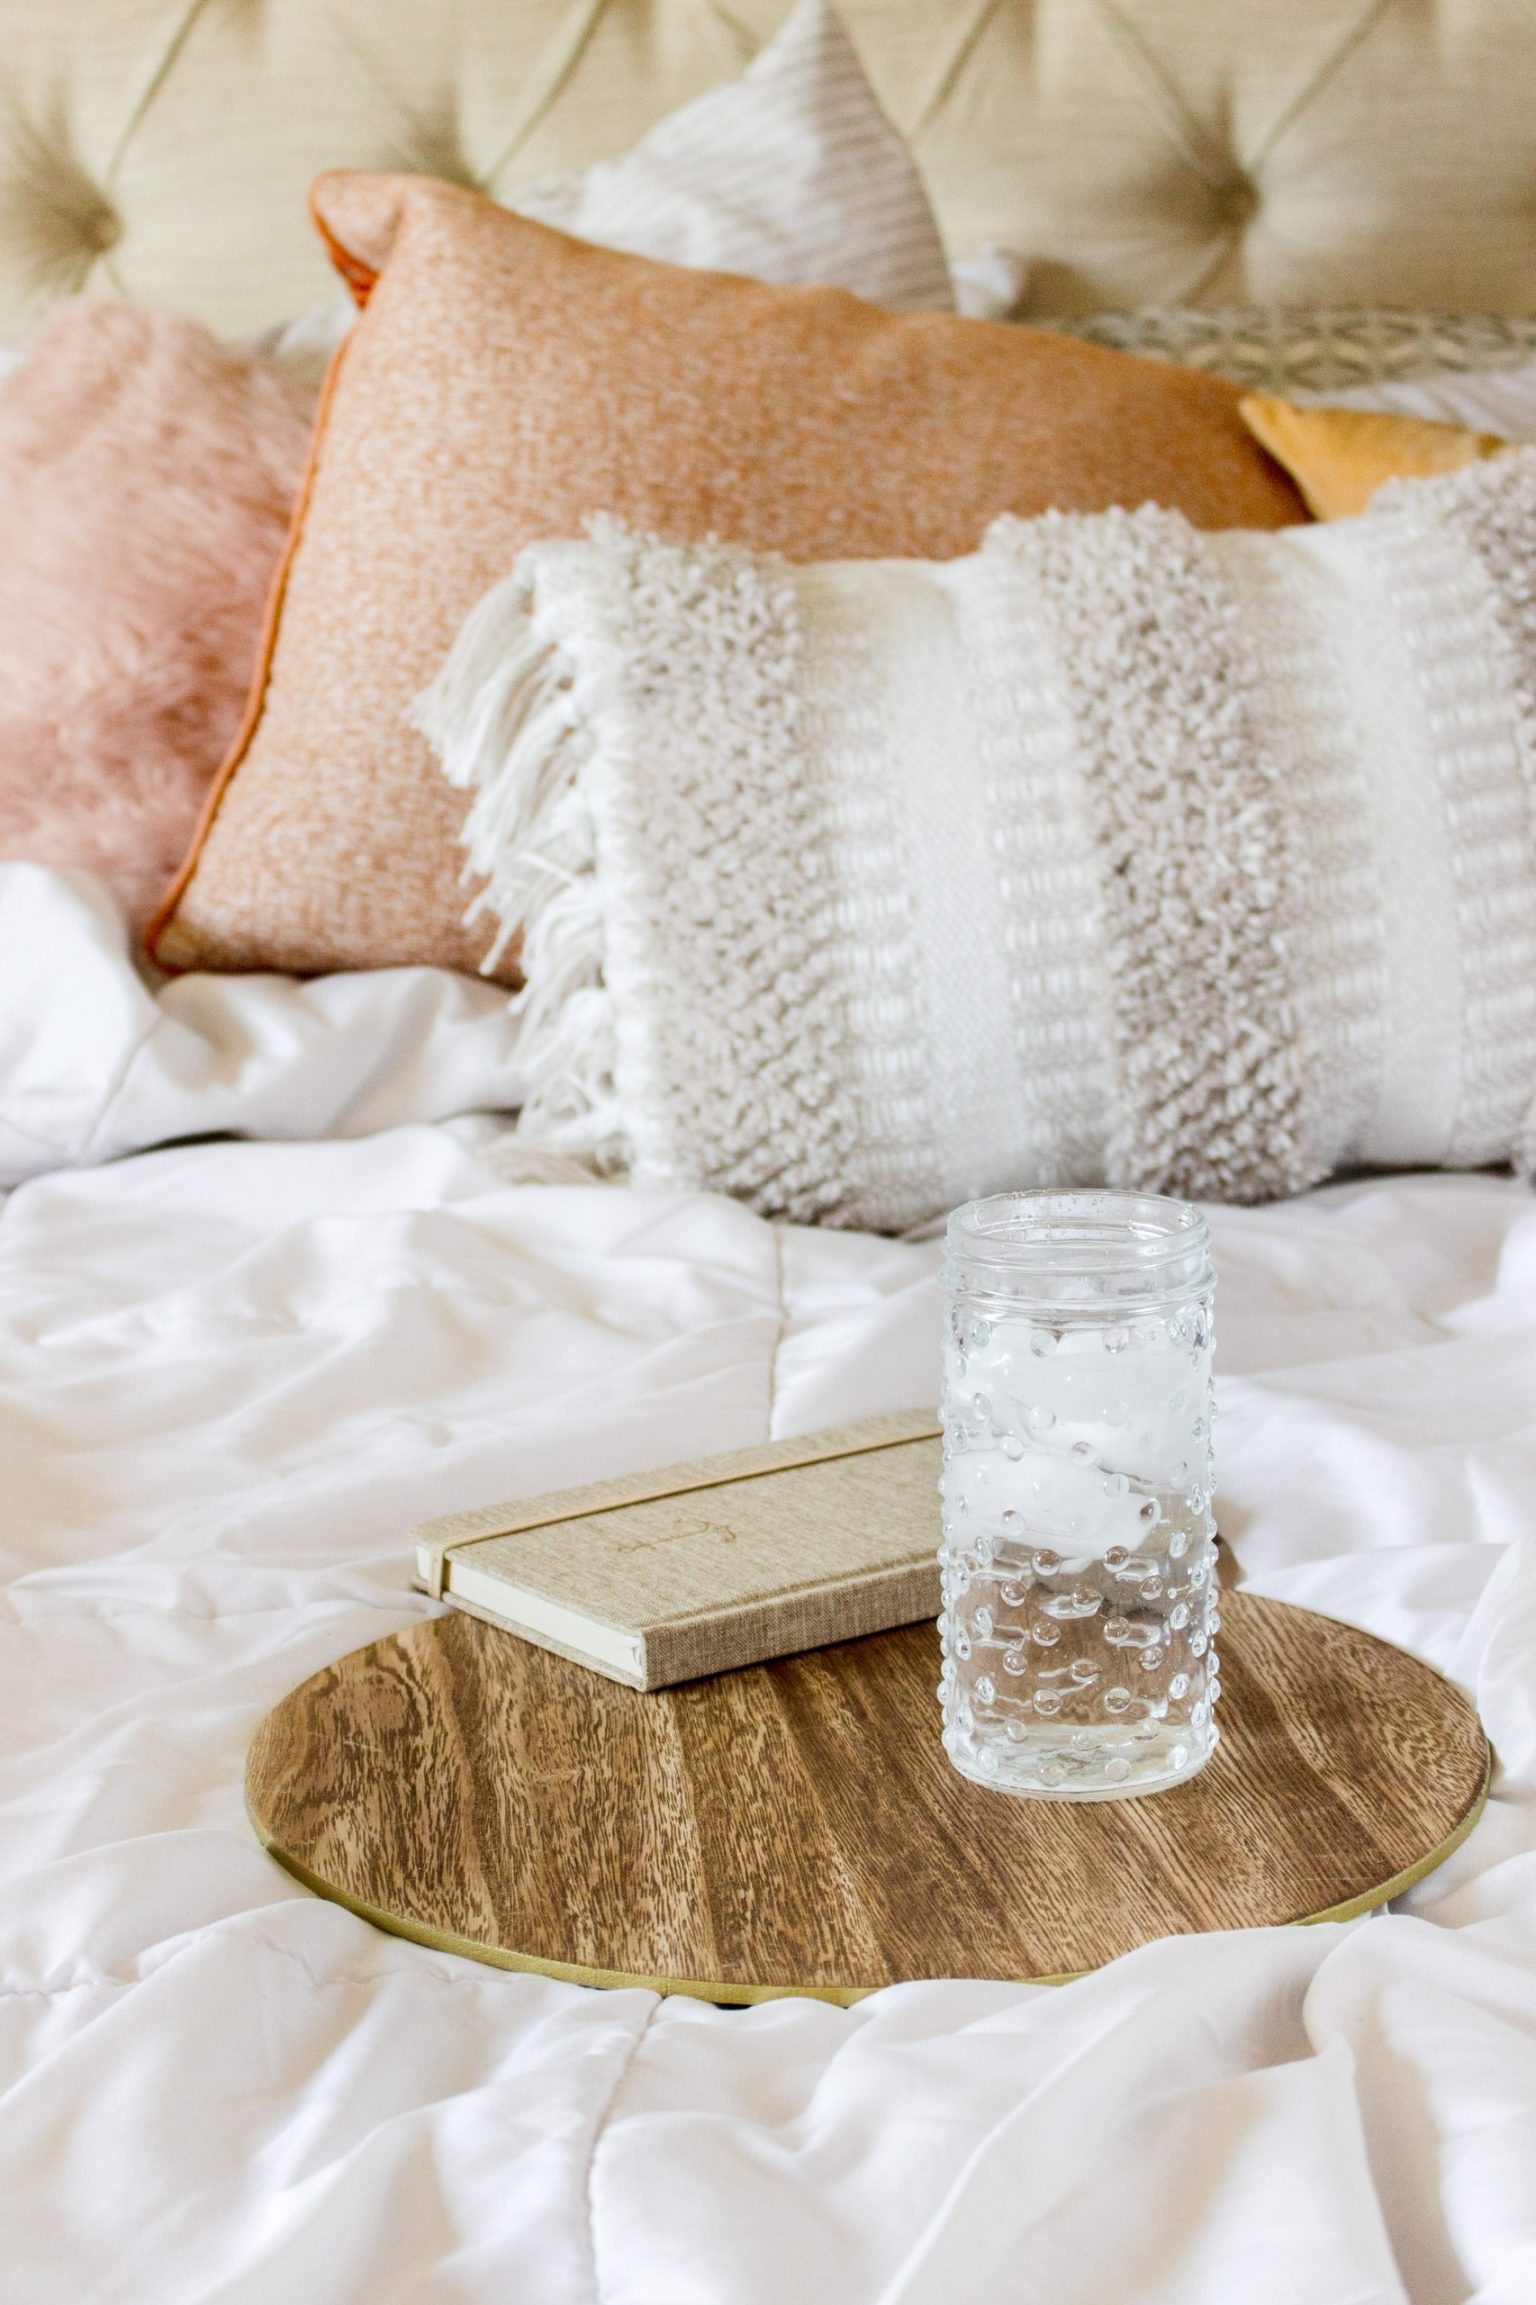 Relaxed reading with books and glass of water